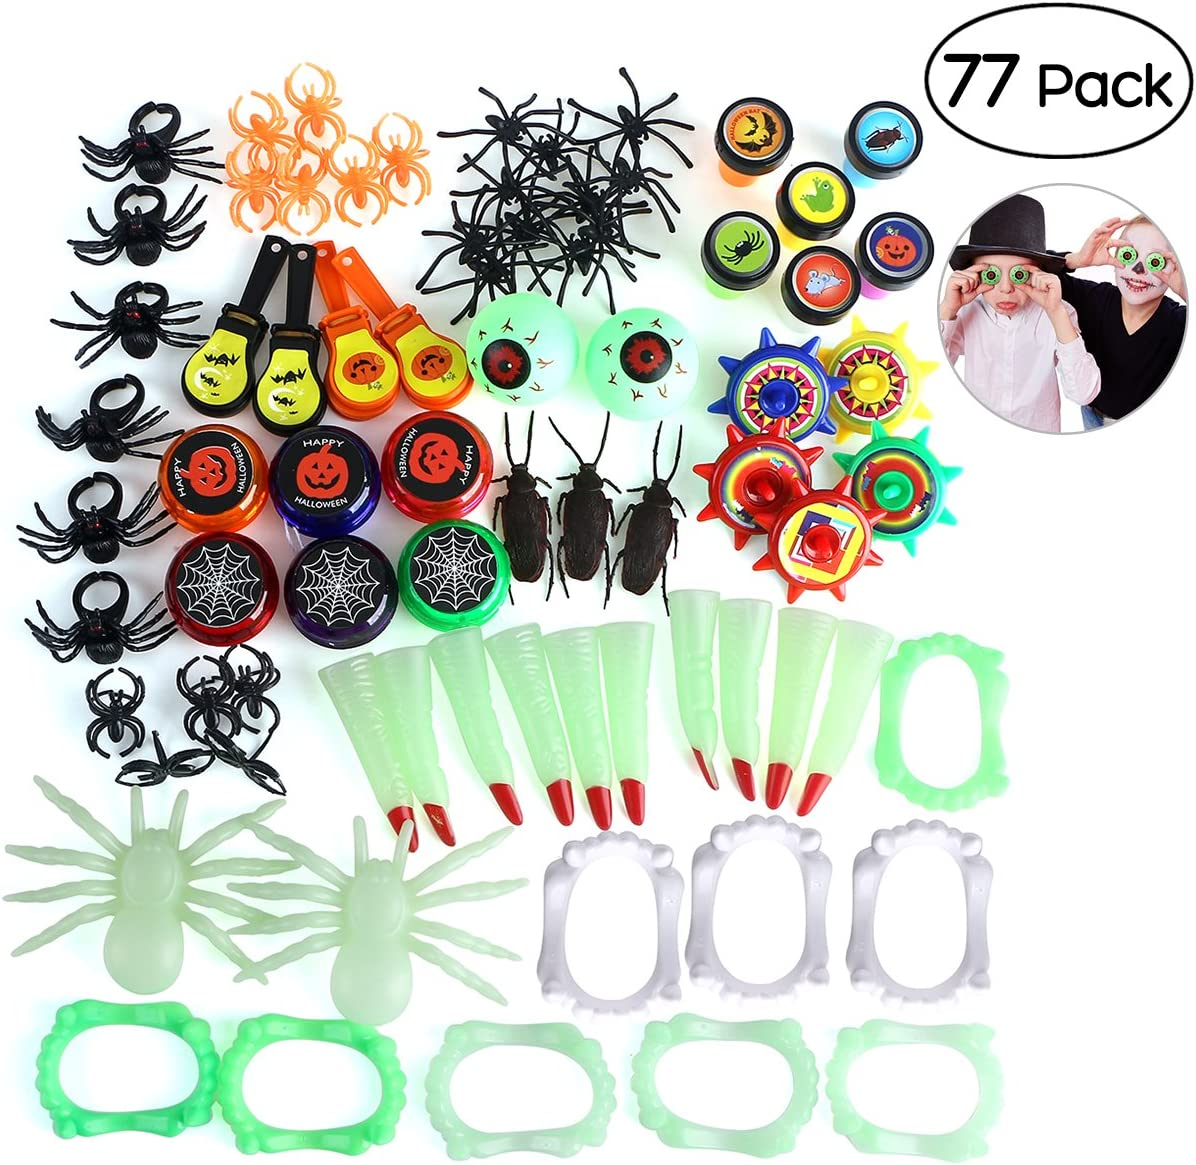 Perfect for Halloween Treats and Prizes Halloween Novelties Toys Assortment for Kids 23 Styles with 101 PCS